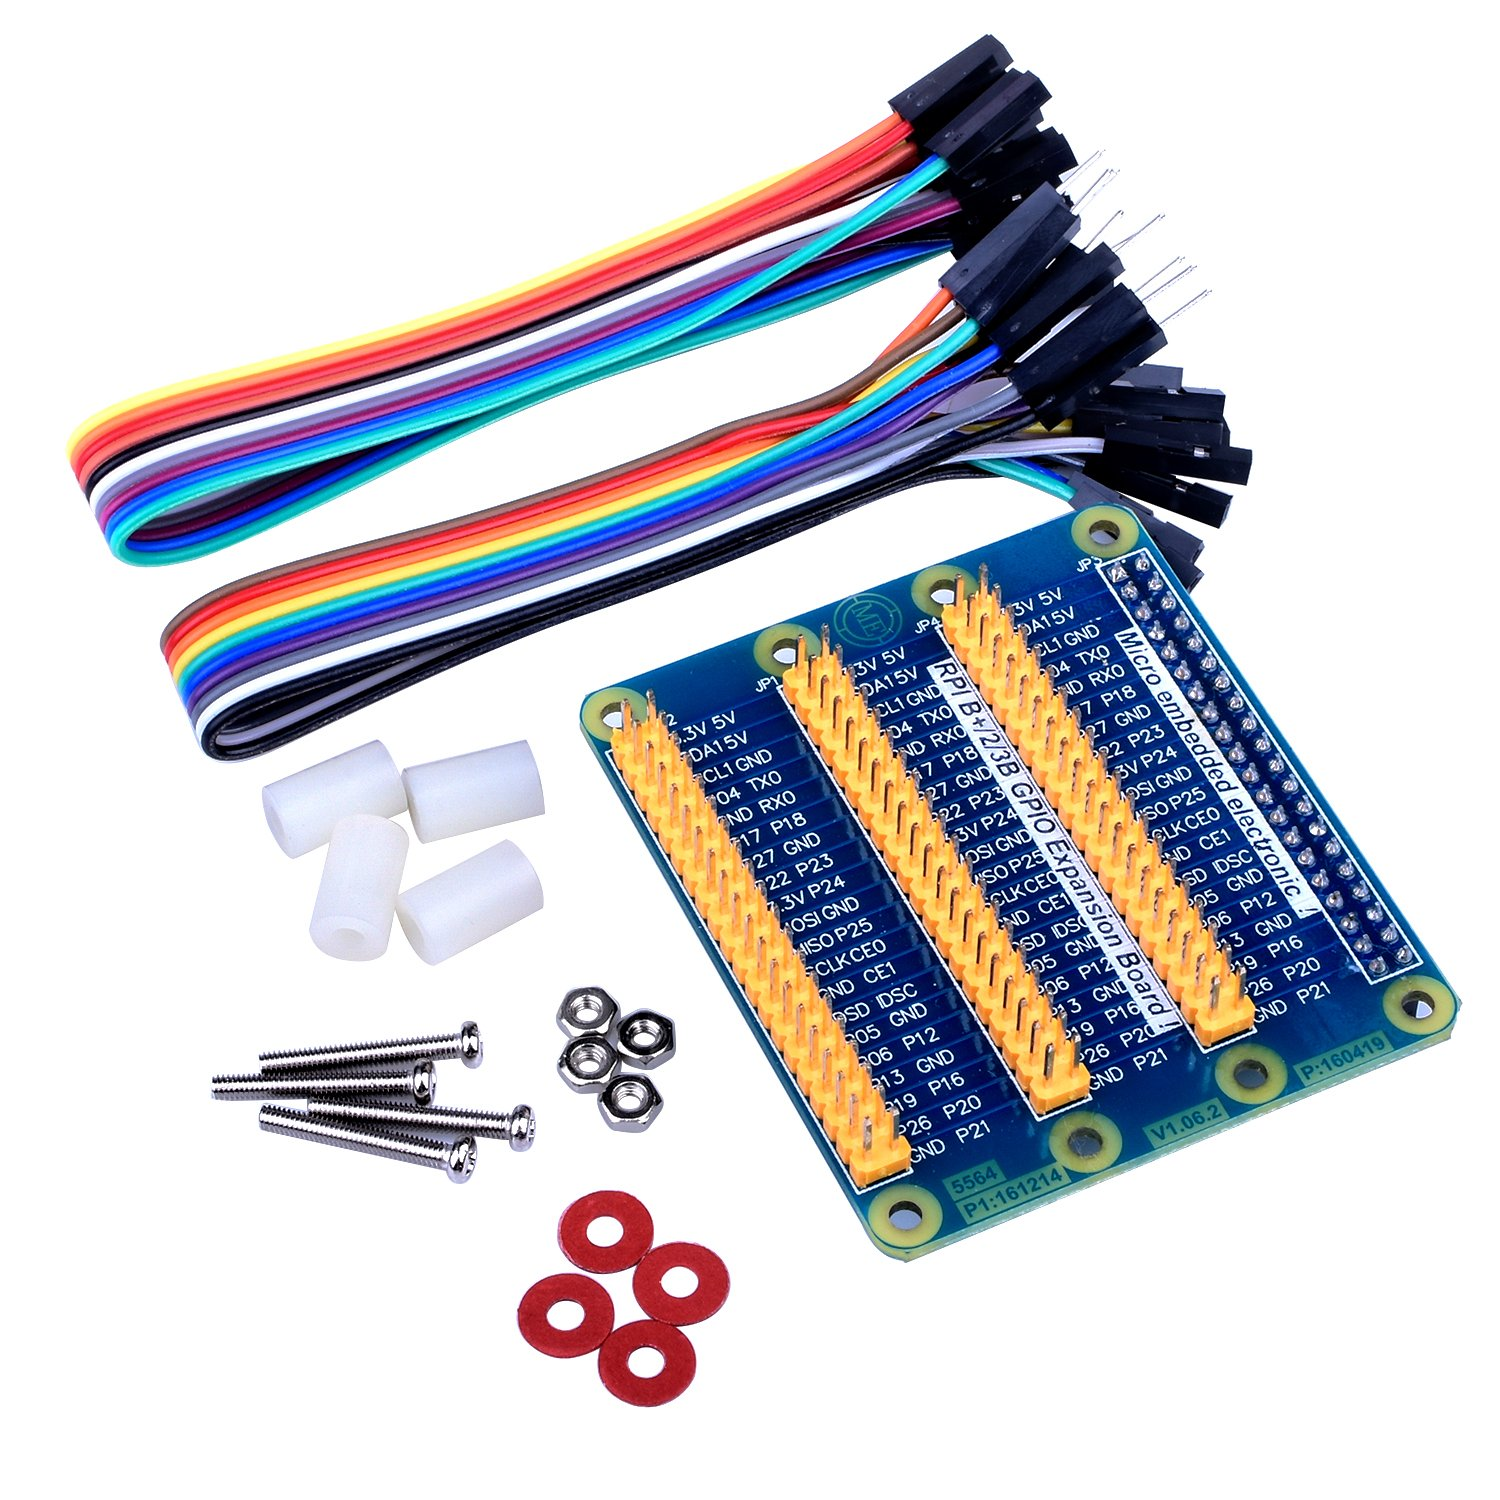 Quimat GPIO Expansion Board For Raspberry Pi/3/2/1 Model B/B+/A/A+ RPi Zero/Zero W,One Row to Three Rows GPIO, DuPont Wire 20pin Male to Female Breadboard Ribbon Jump Cable